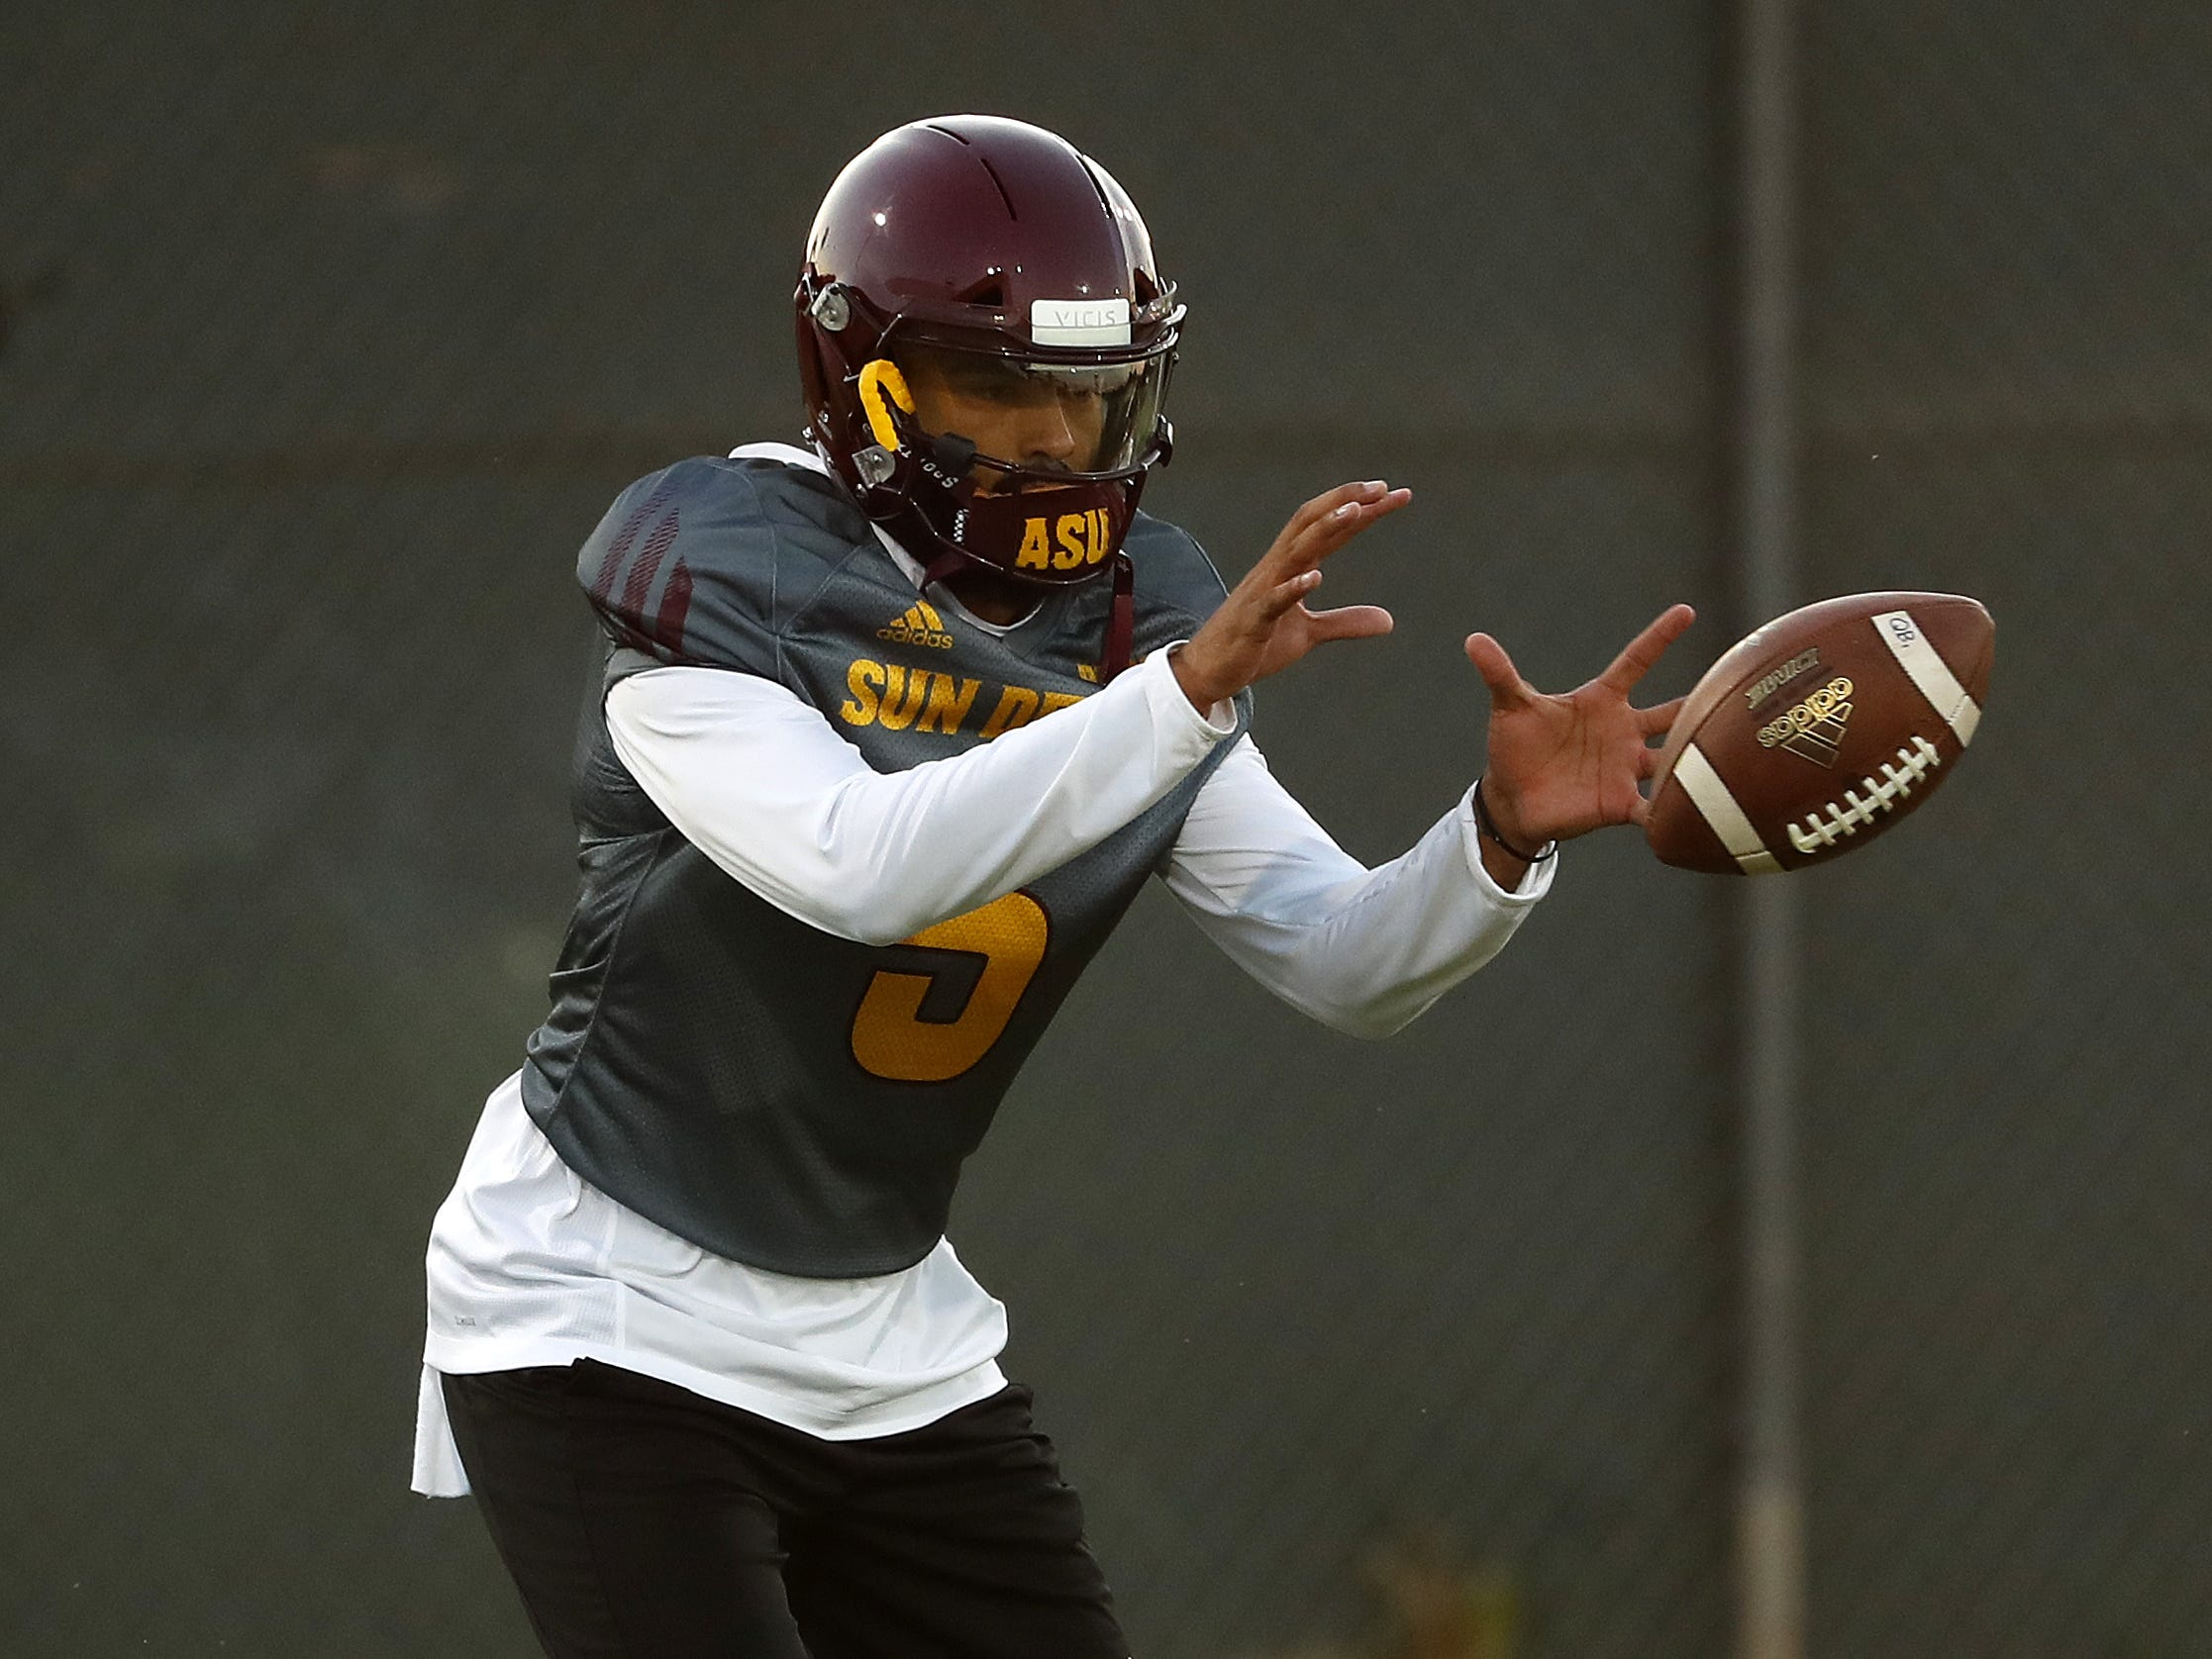 ASU's Manny Wilkins (5) catches a snap during a practice at Kajikawa Football Practice Fields in Tempe, Ariz. on Aug. 6, 2018.